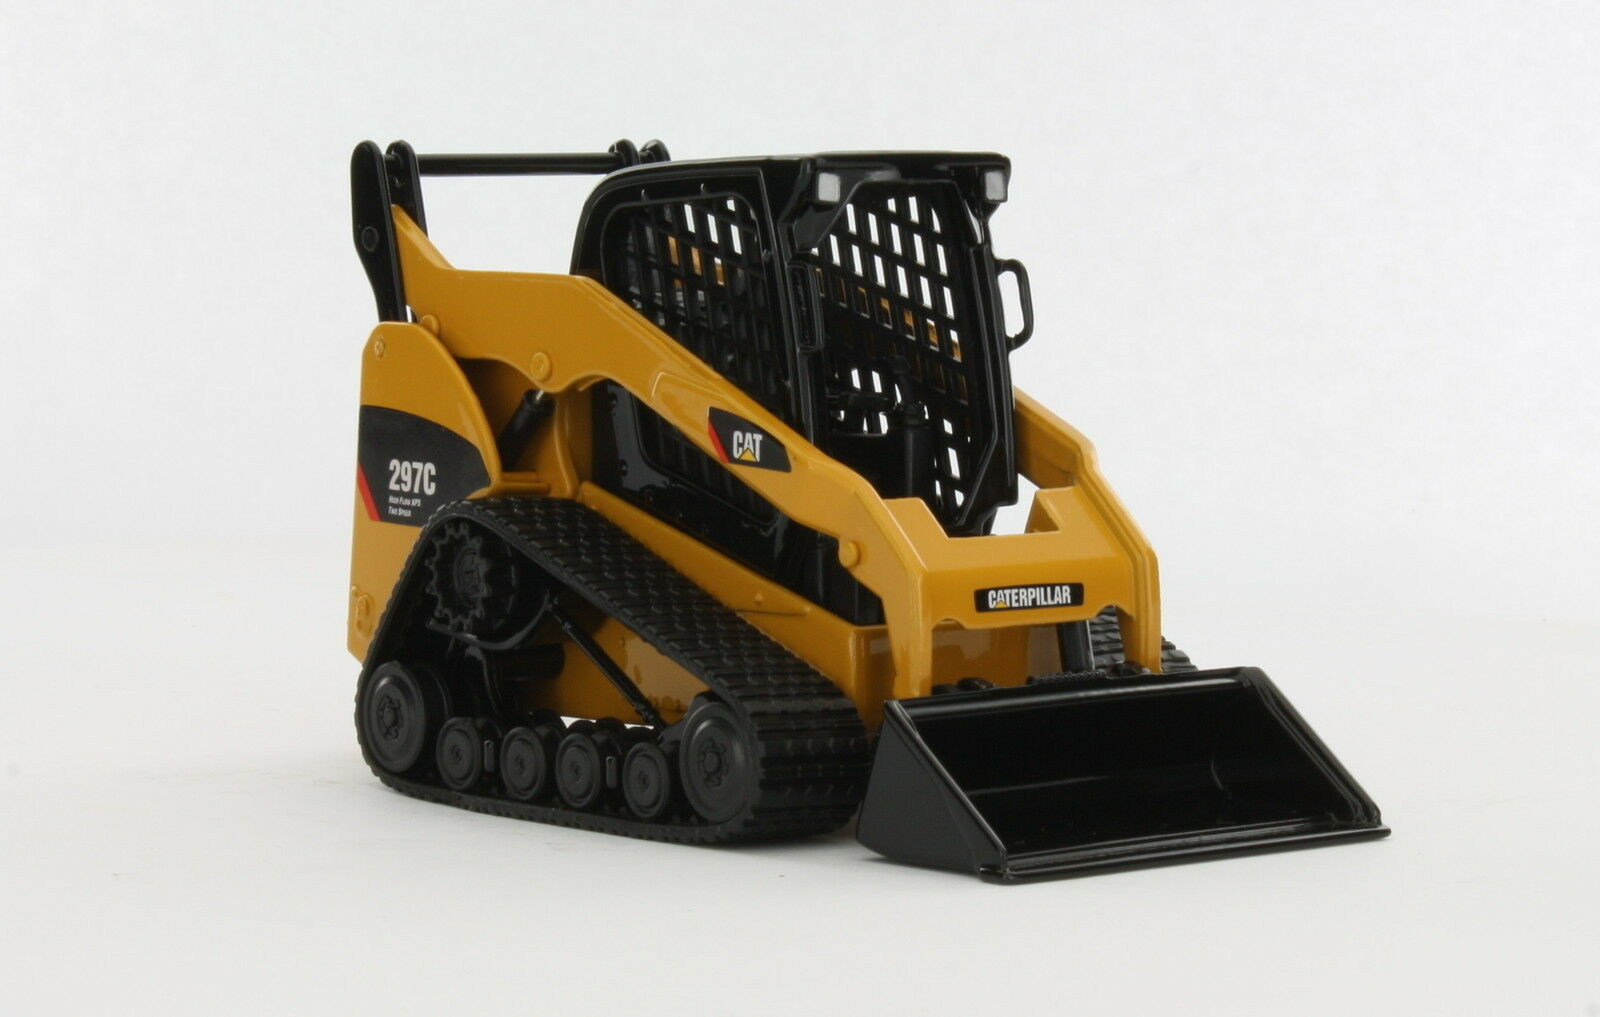 Caterpillar 1 32 Cat 297C Multi-Terrain Loader with Work Tools Norscot 55168